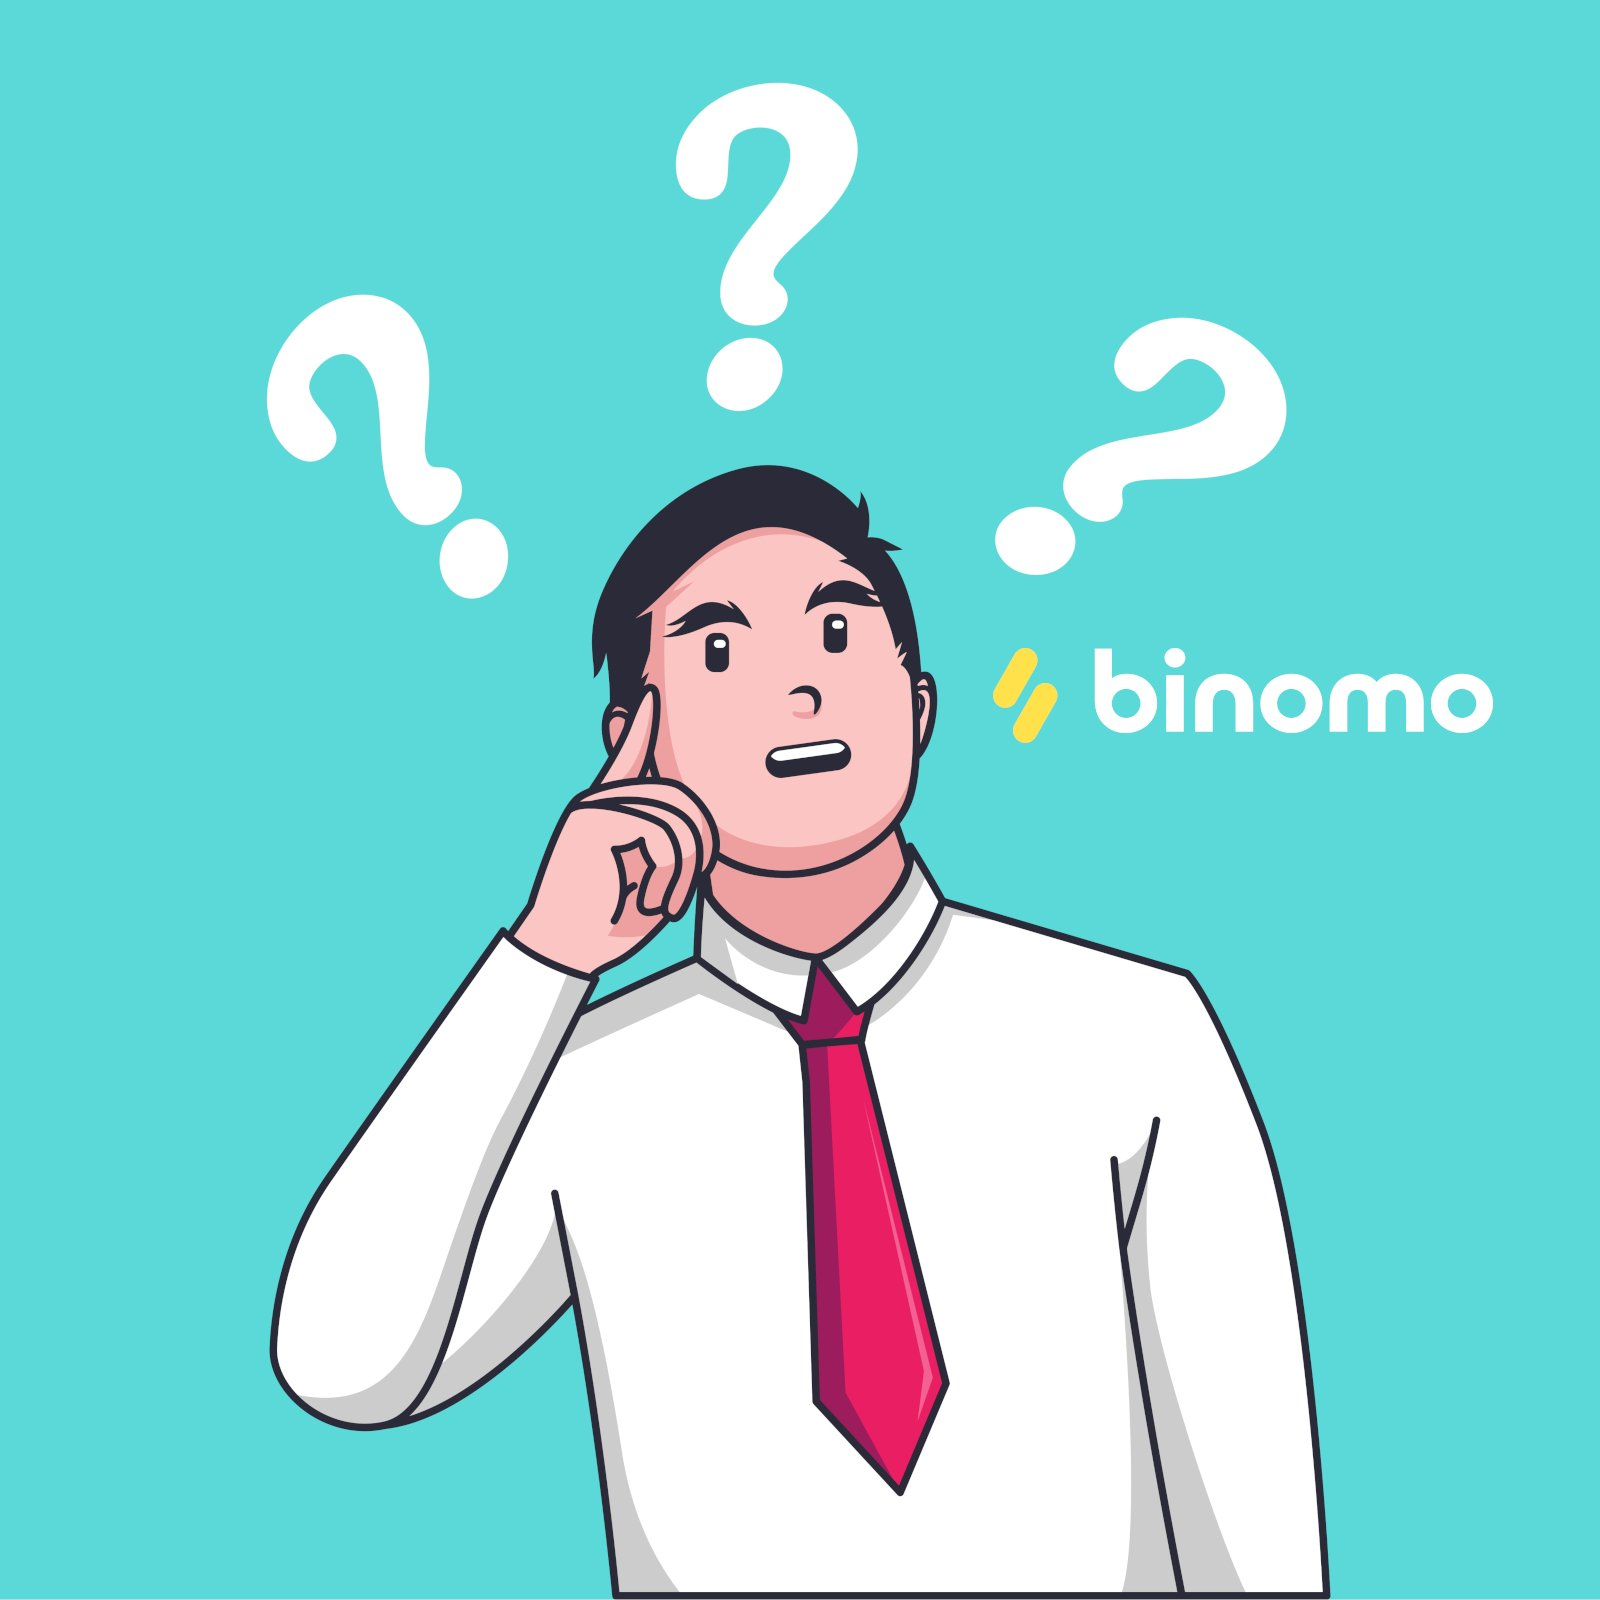 is binomo good?